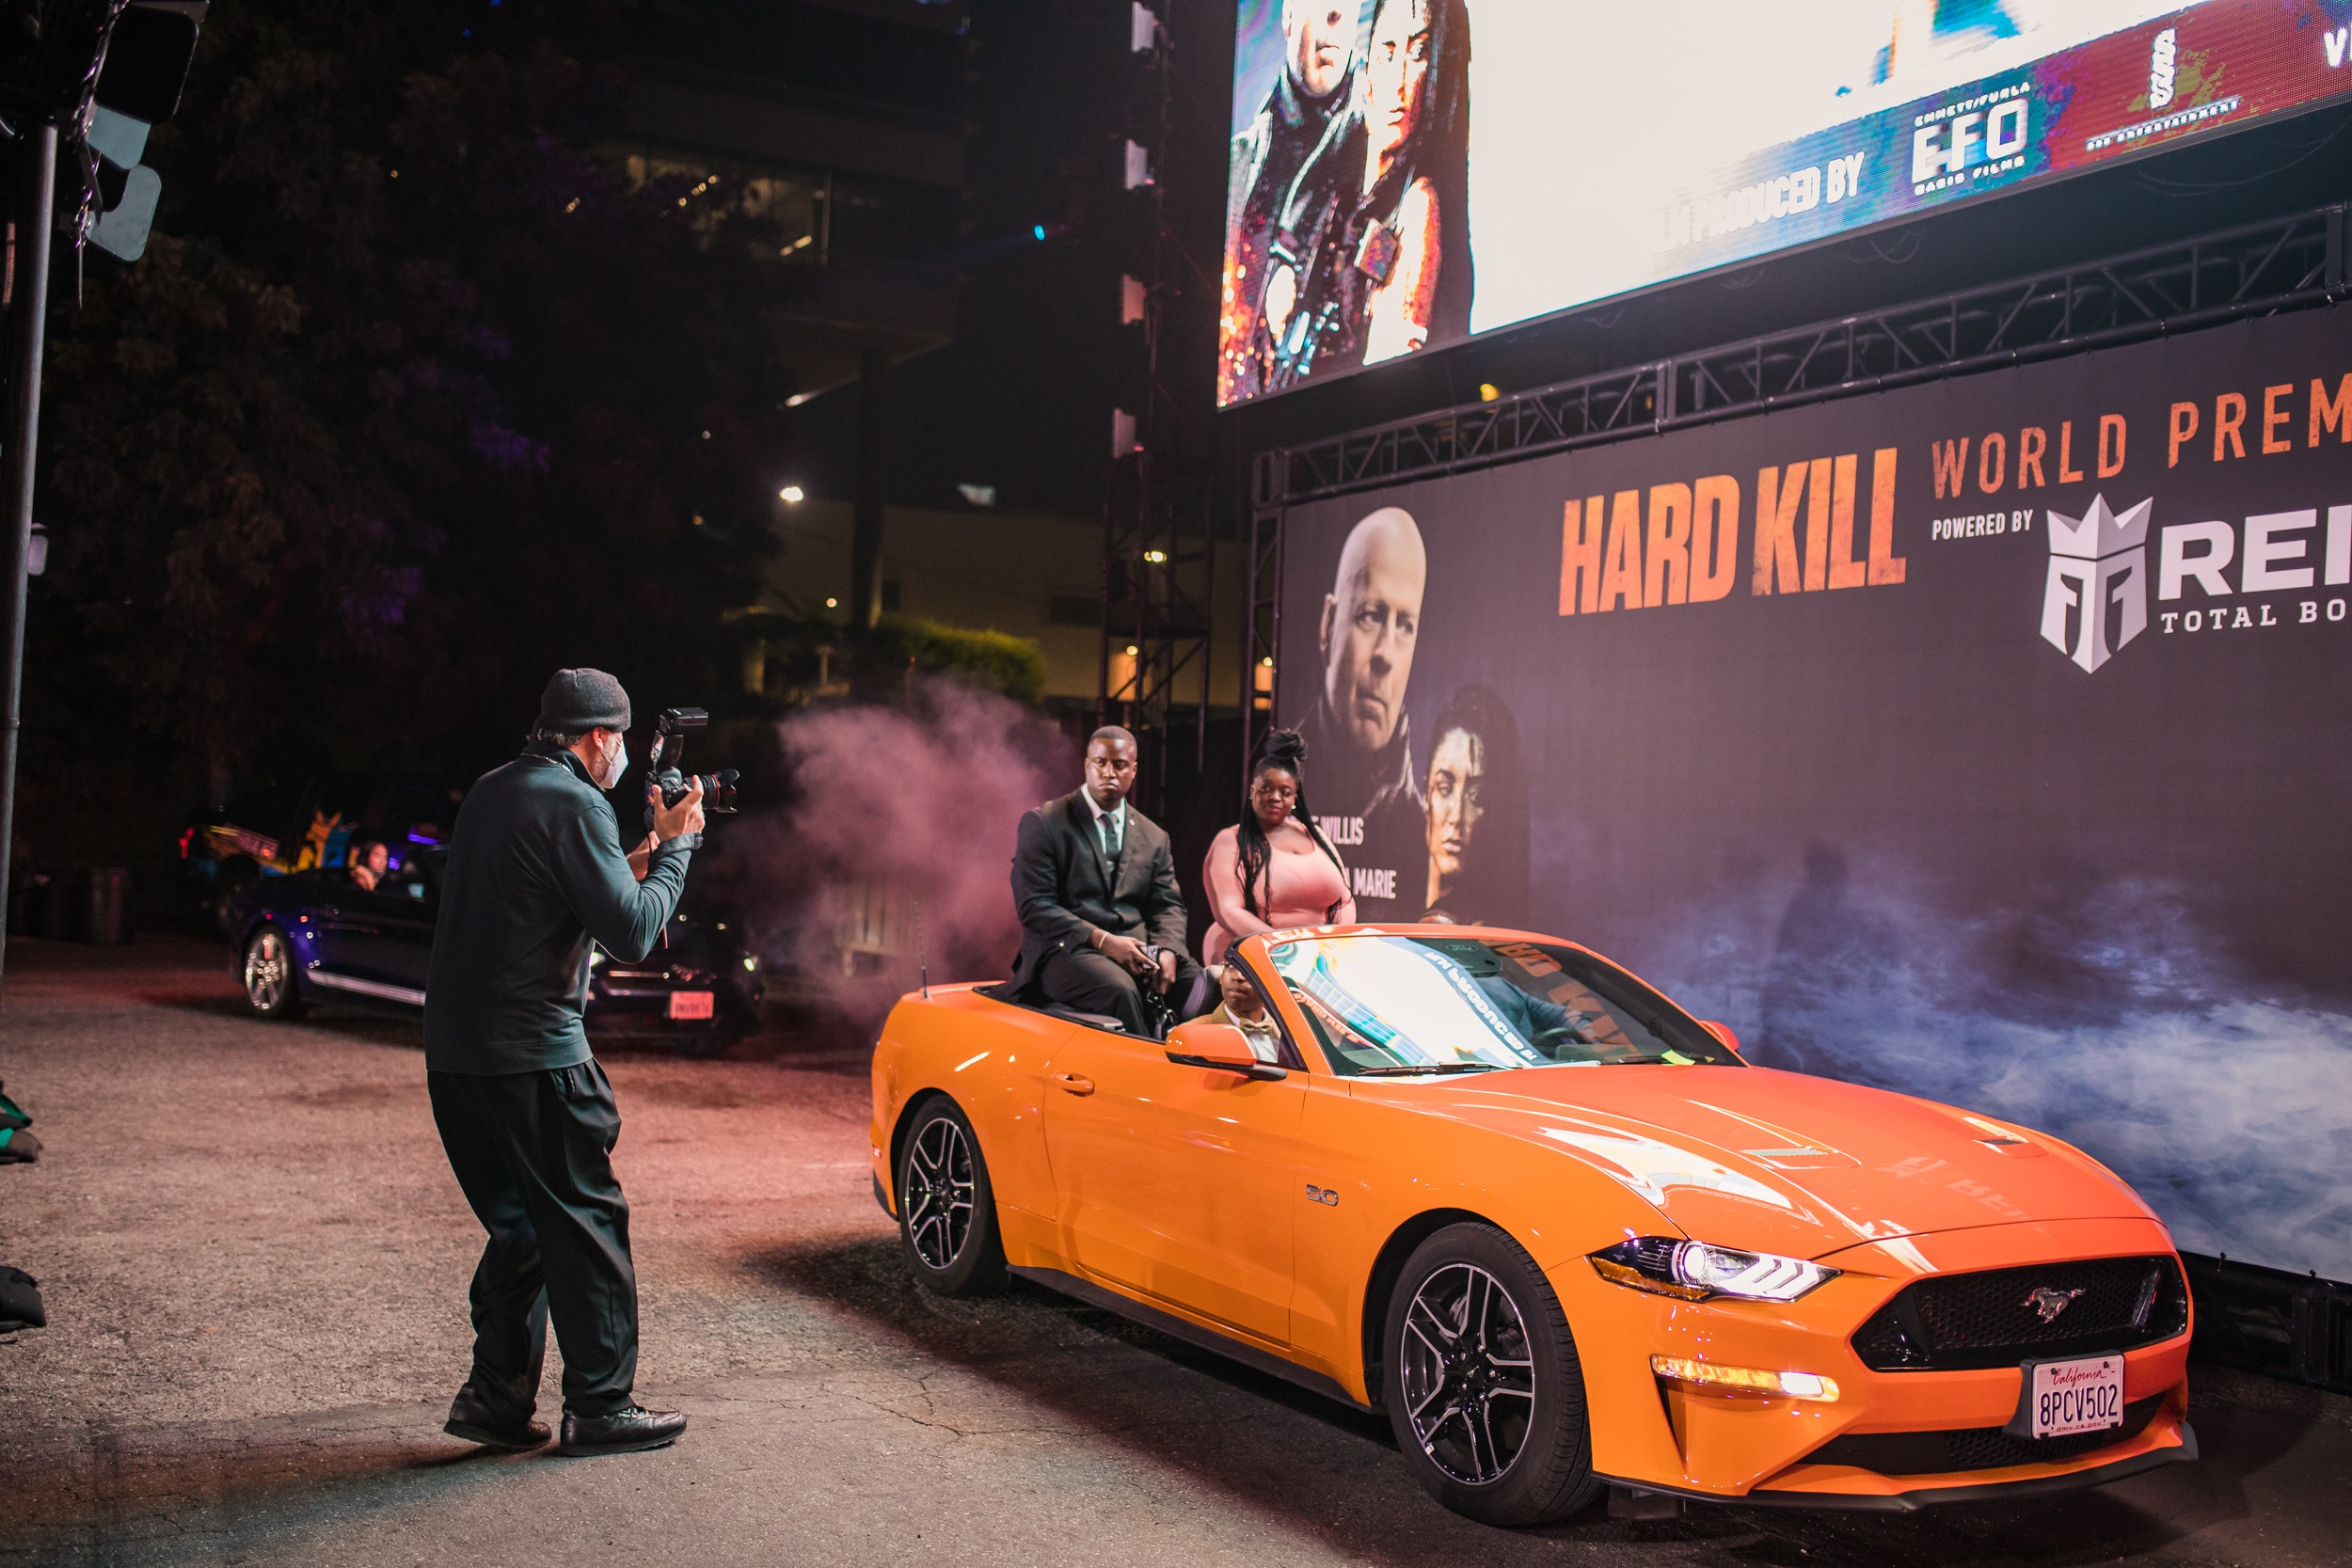 Guests drive through the drive and repeat carpet orange sports car Hard Kill billboard